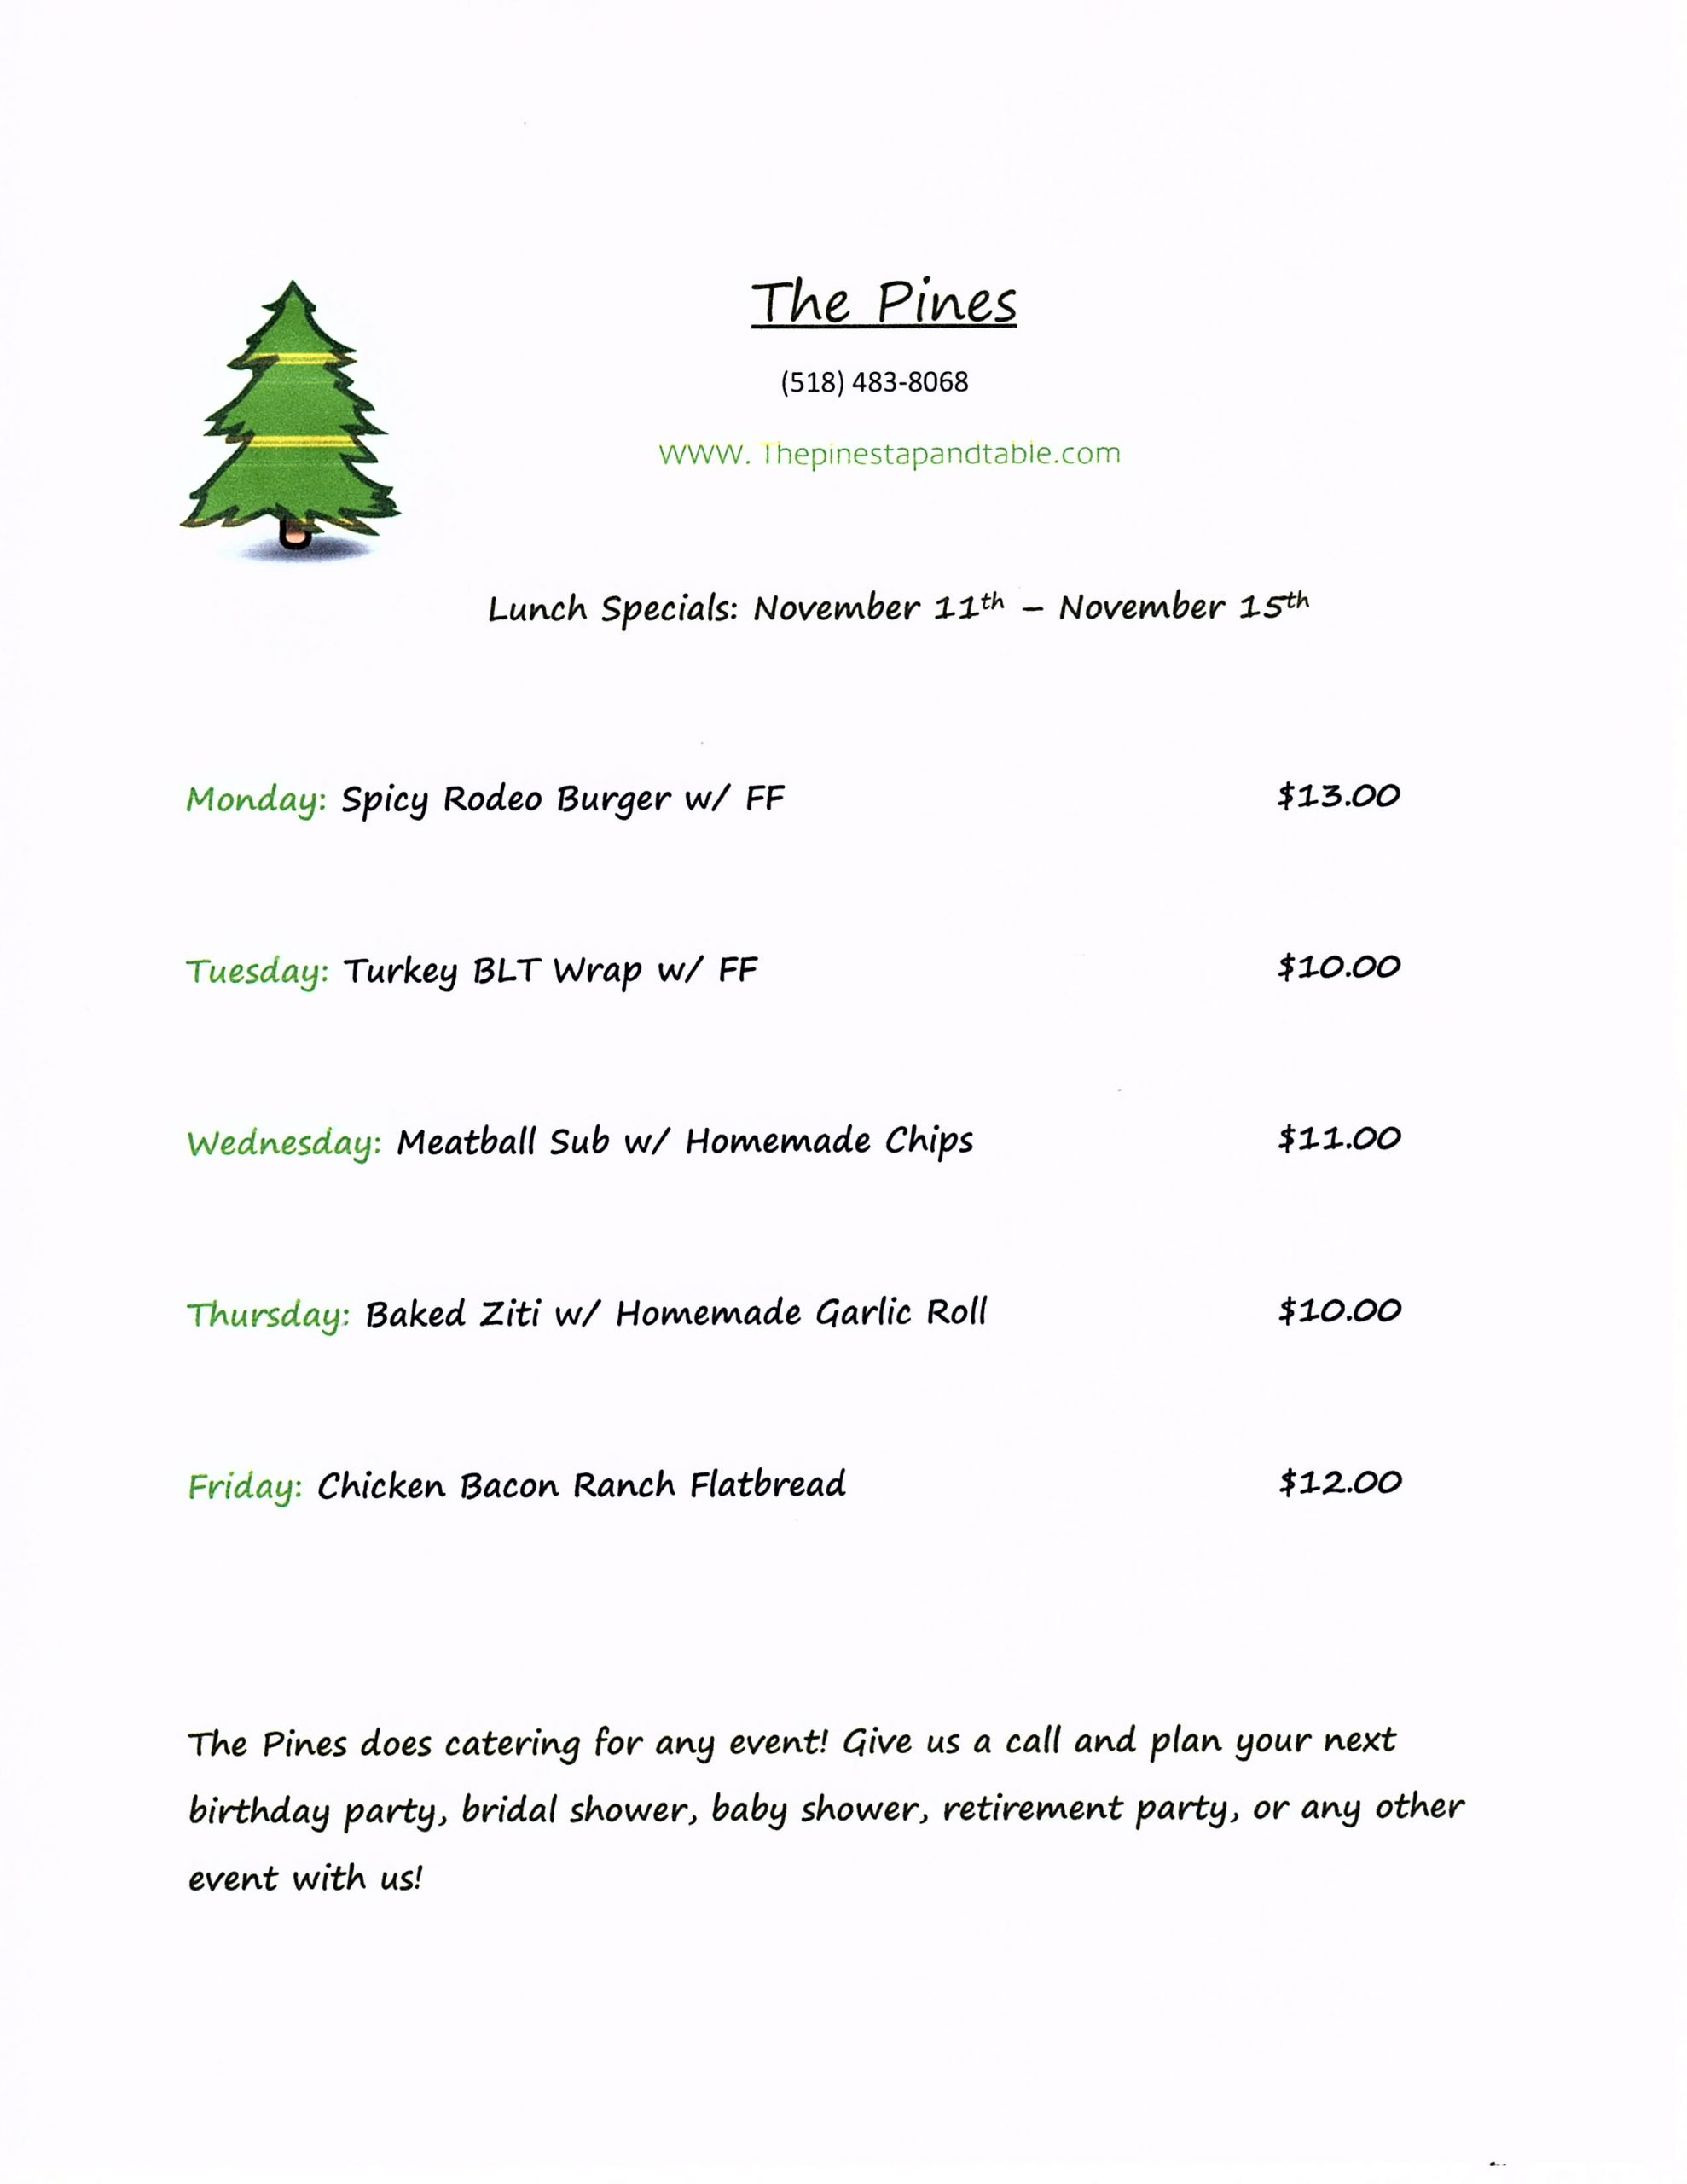 The Pines Tap and Table Lunch Specials 11/11